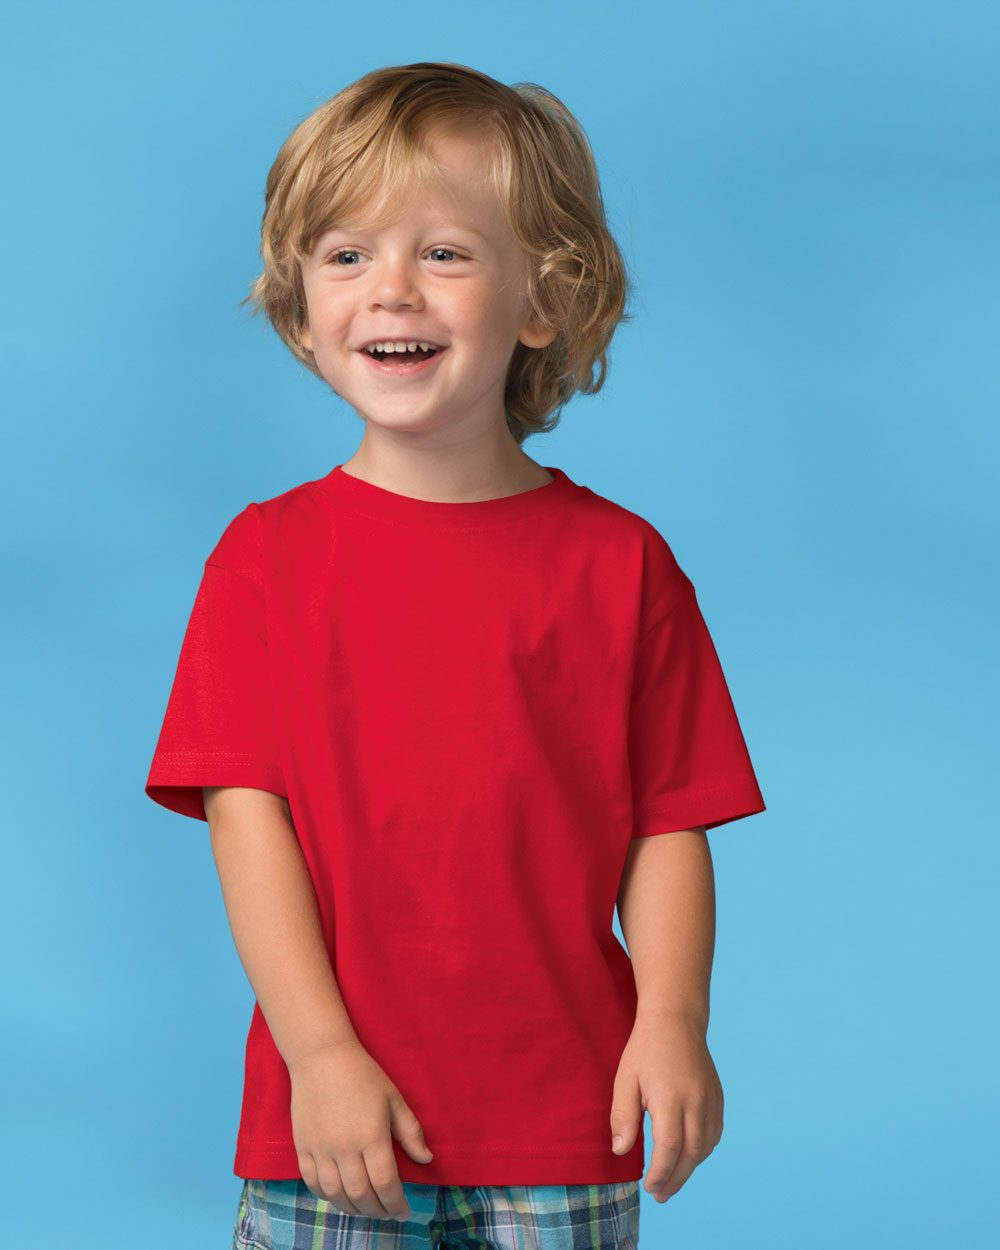 837723290 Rabbit Skins 3321 - Fine Jersey Toddler T-Shirt $2.69 - Infants/Toddlers' T- Shirts